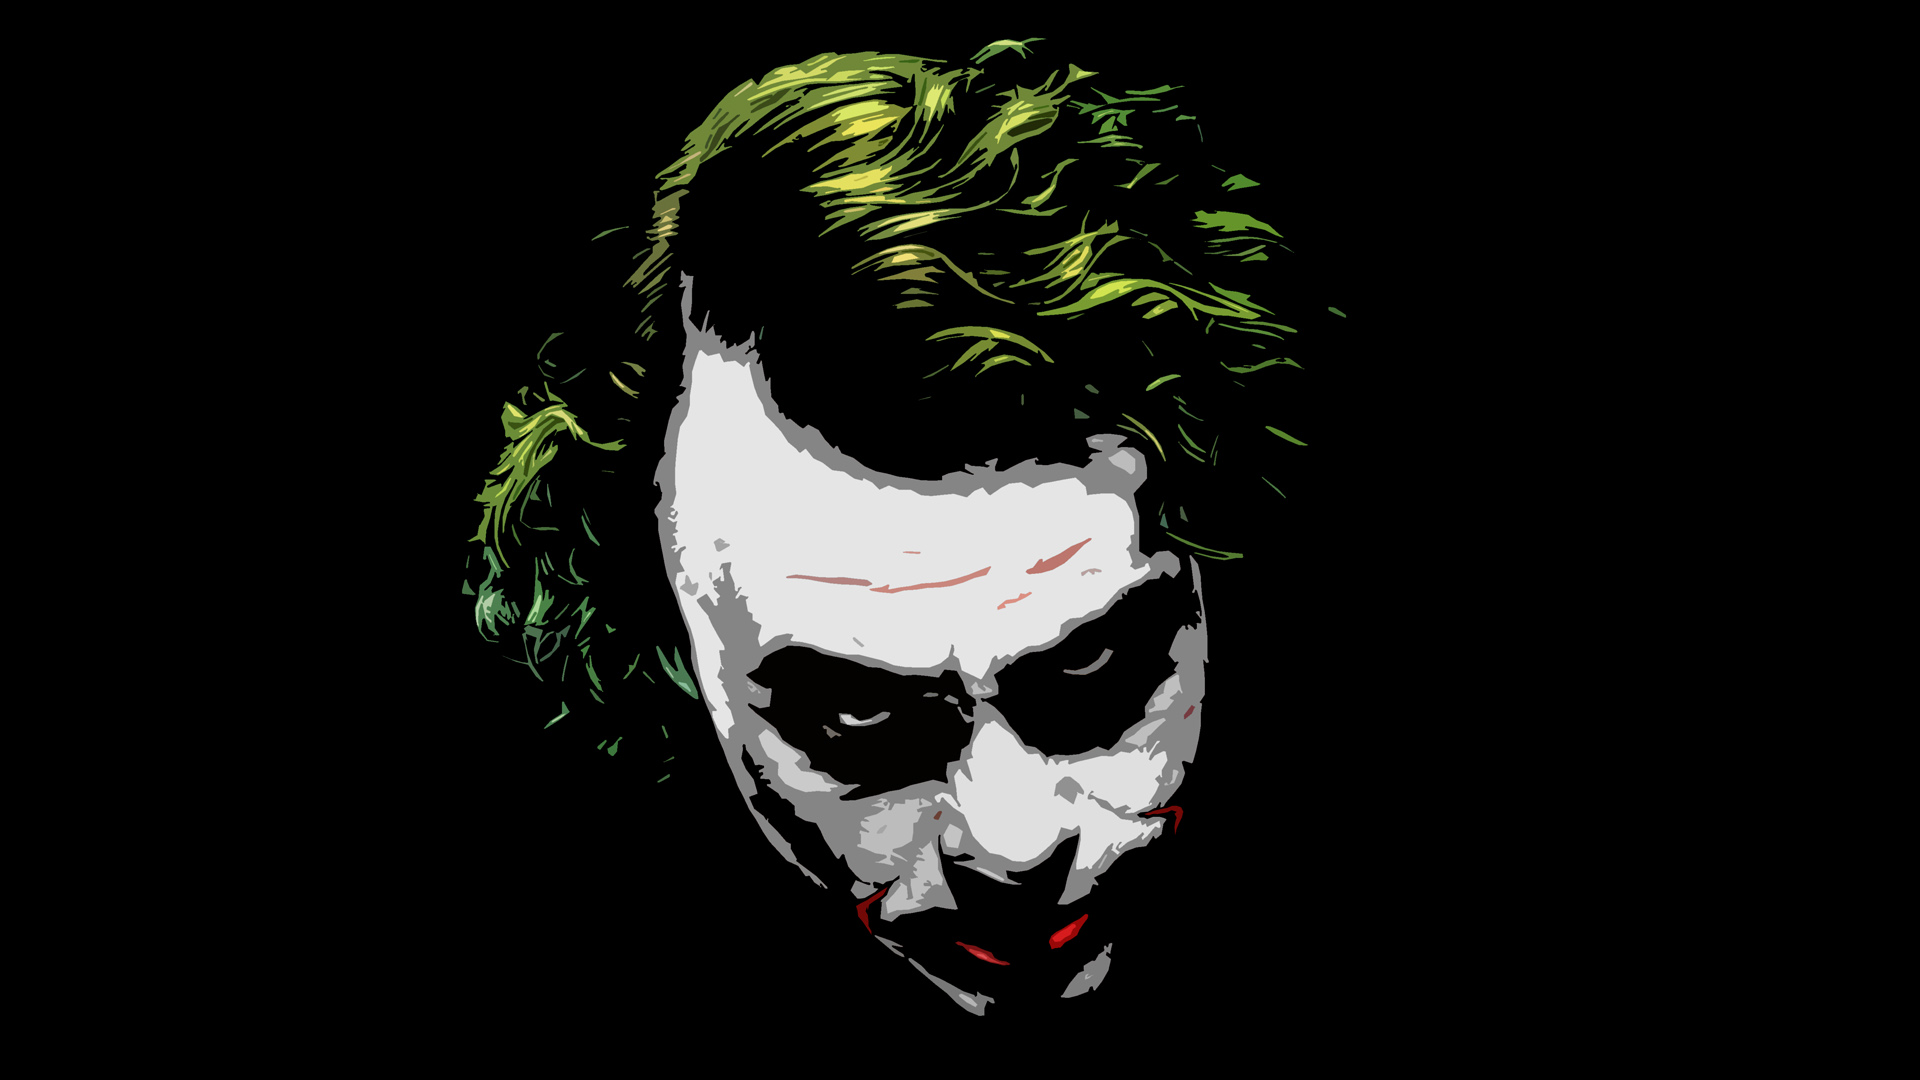 joker wallpaper   173564   High Quality and Resolution Wallpapers 1920x1080